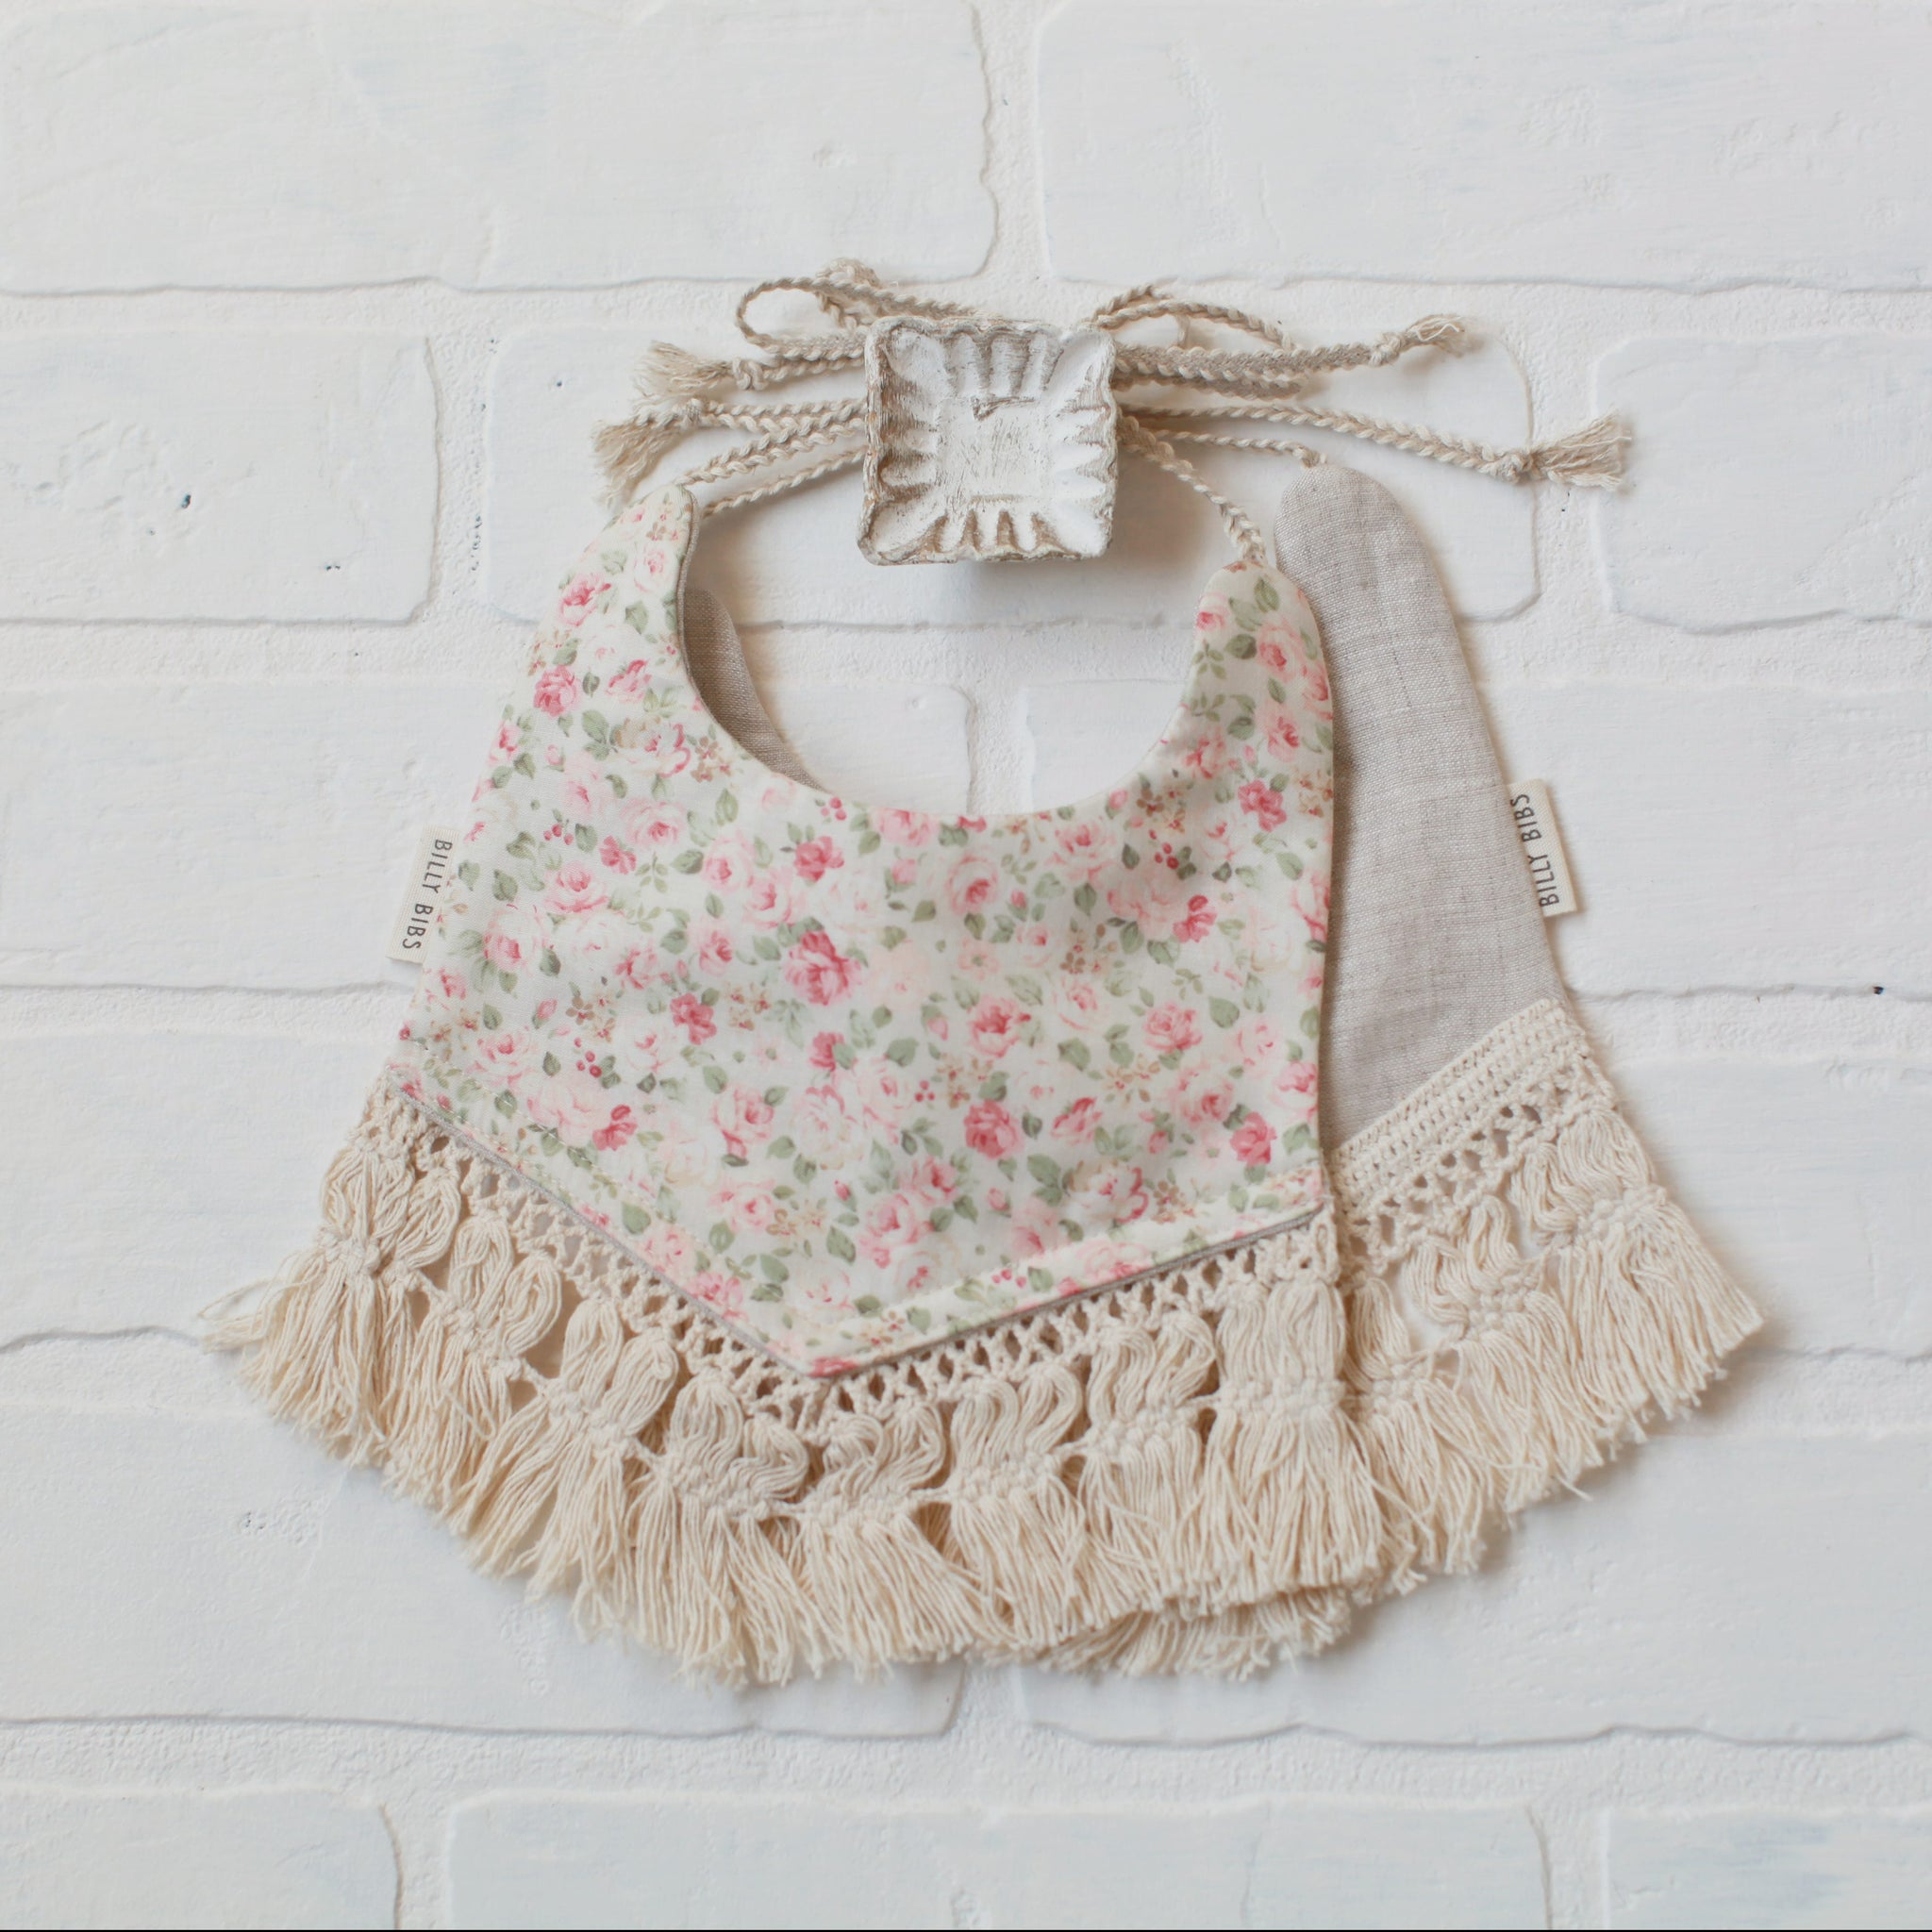 Reversible Allison Bib - Floral/Light Gray Fabric - Little Owly